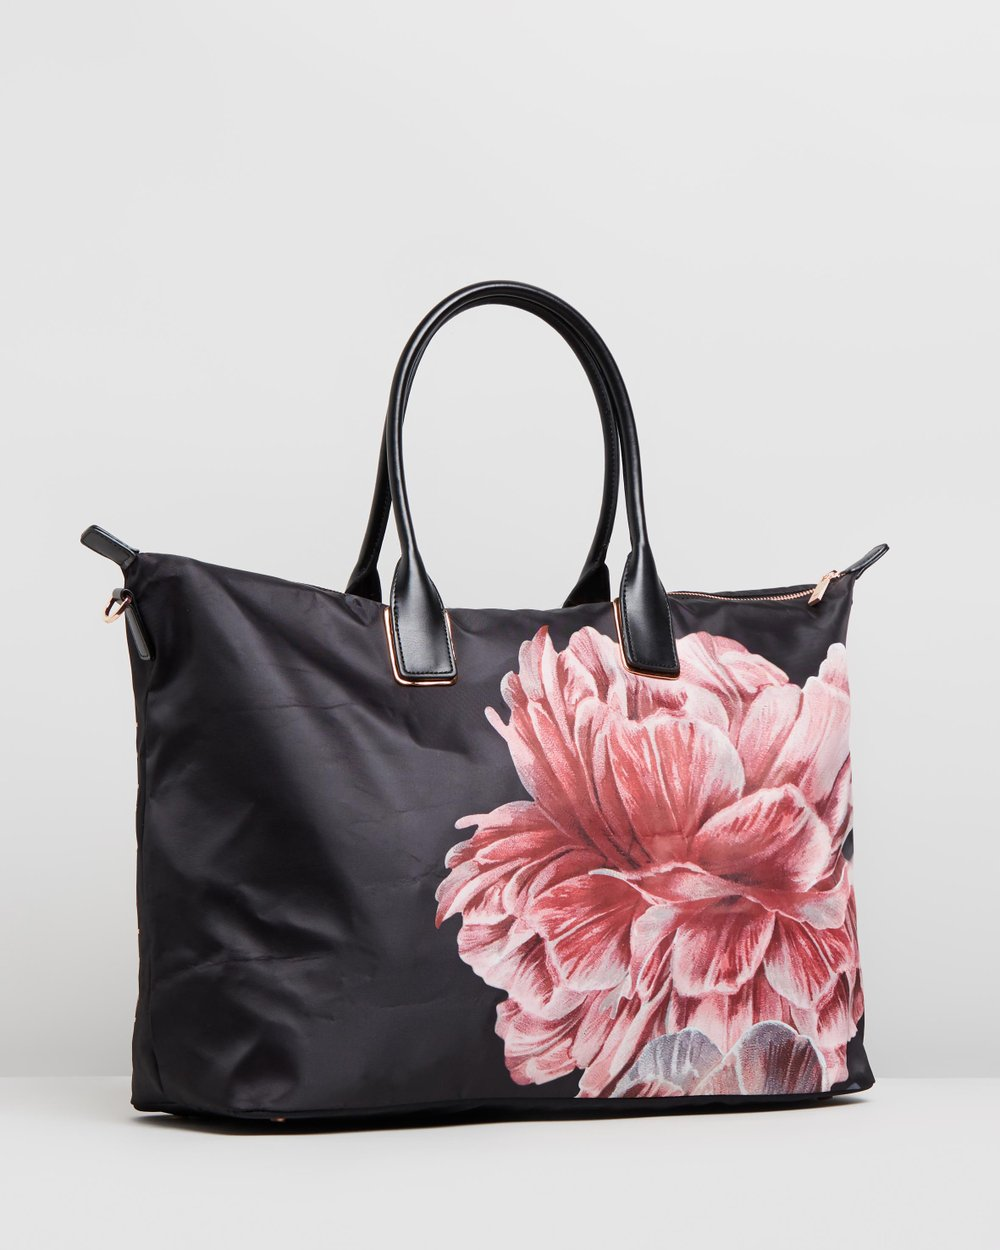 6f7d05caa8ec Tranquility Nylon Tote by Ted Baker Online